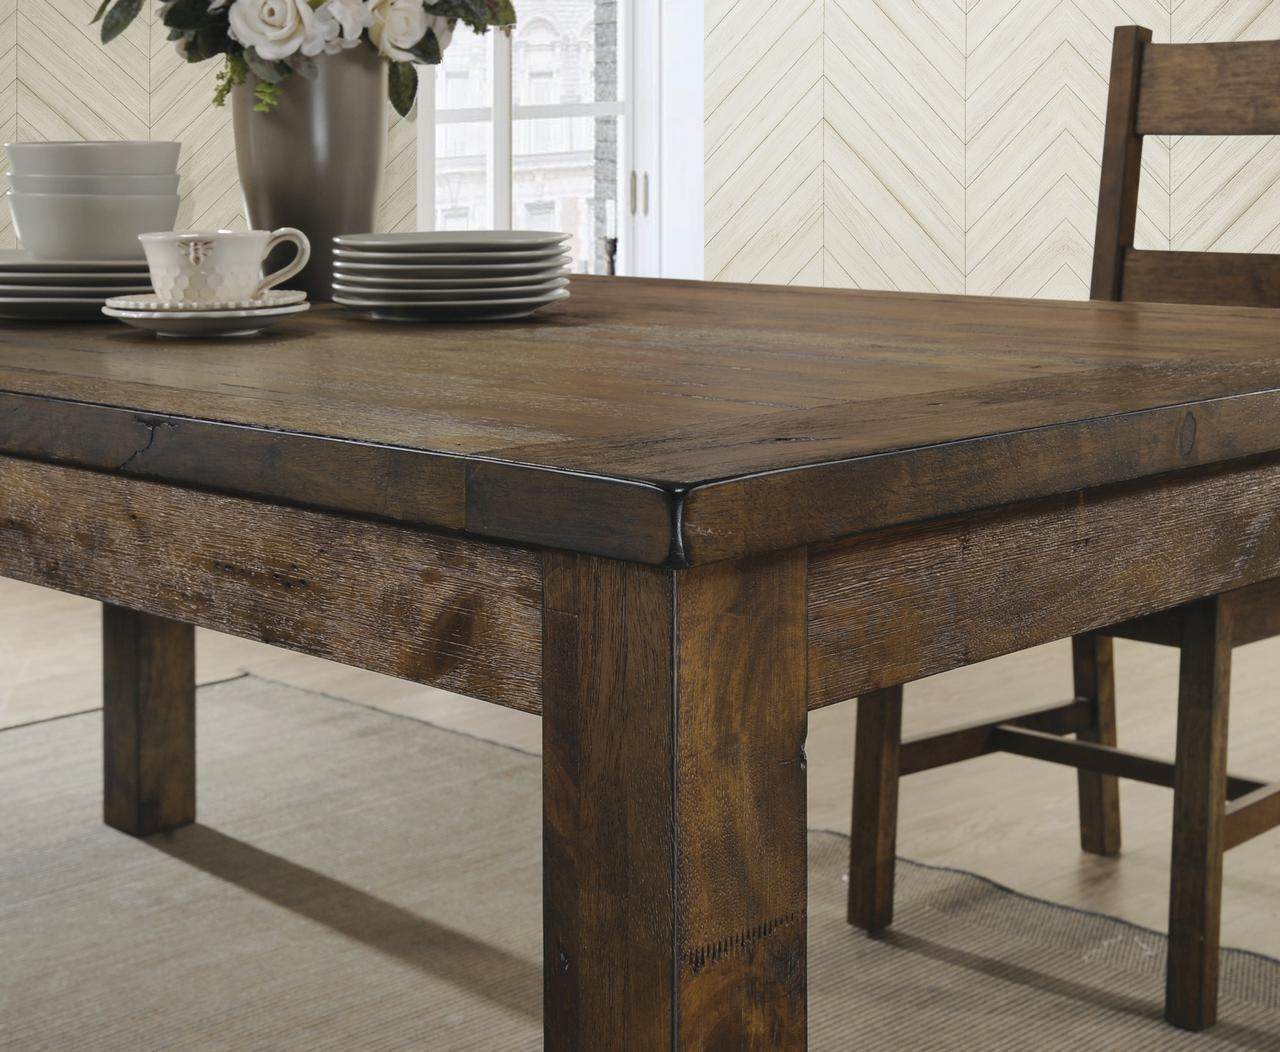 Dining Room Furniture Rustic Coaster Company Coleman Rustic Dining Table Rustic Golden Brown